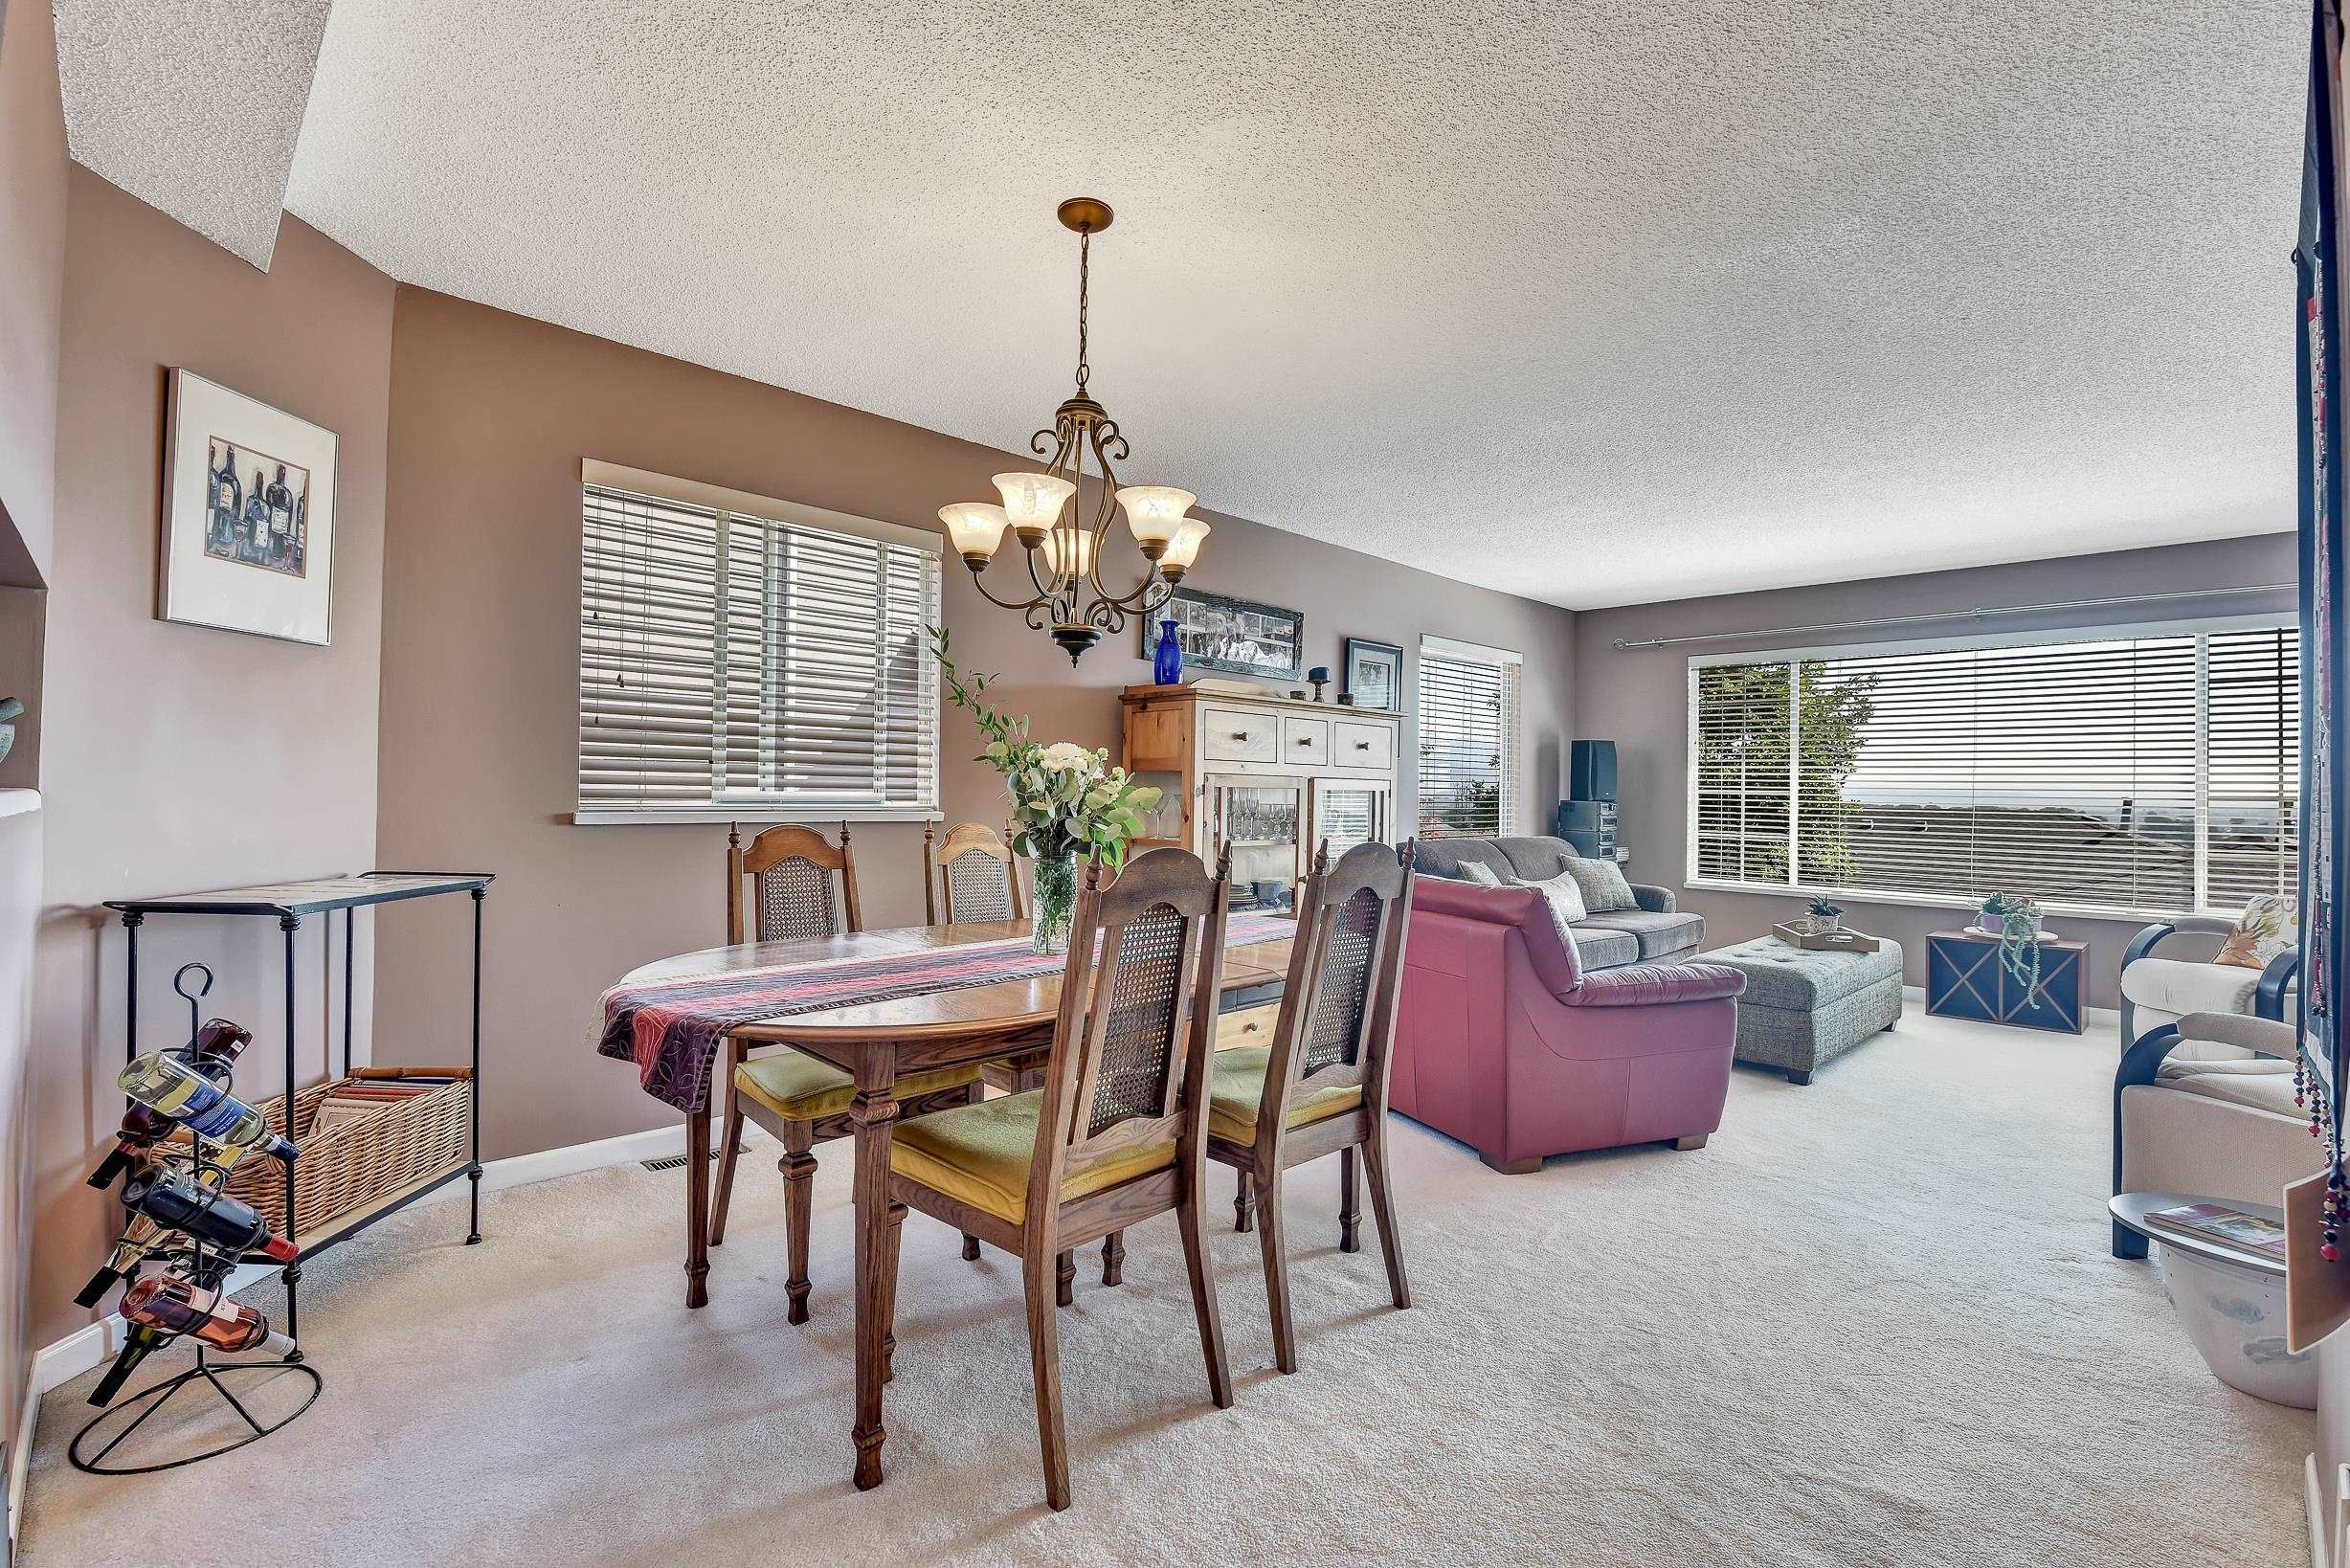 """Photo 5: Photos: 208 1140 CASTLE Crescent in Port Coquitlam: Citadel PQ Townhouse for sale in """"THE UPLANDS"""" : MLS®# R2609078"""